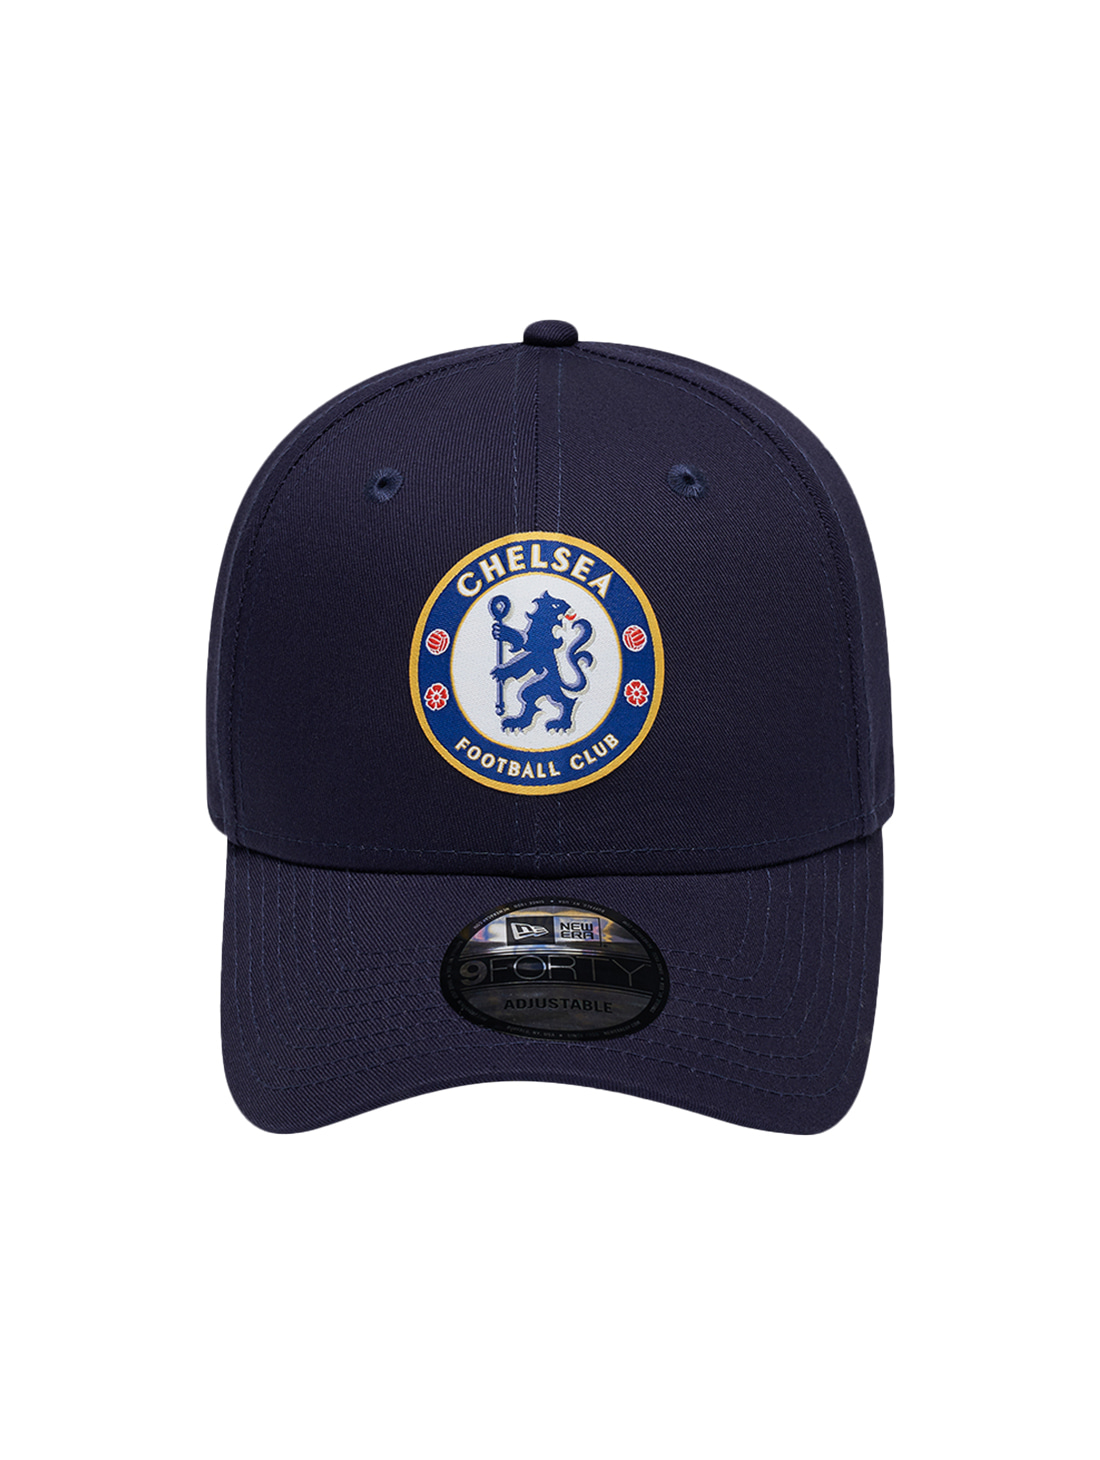 GOALSTUDIO CHELSEA 940 BALL CAP - NAVY